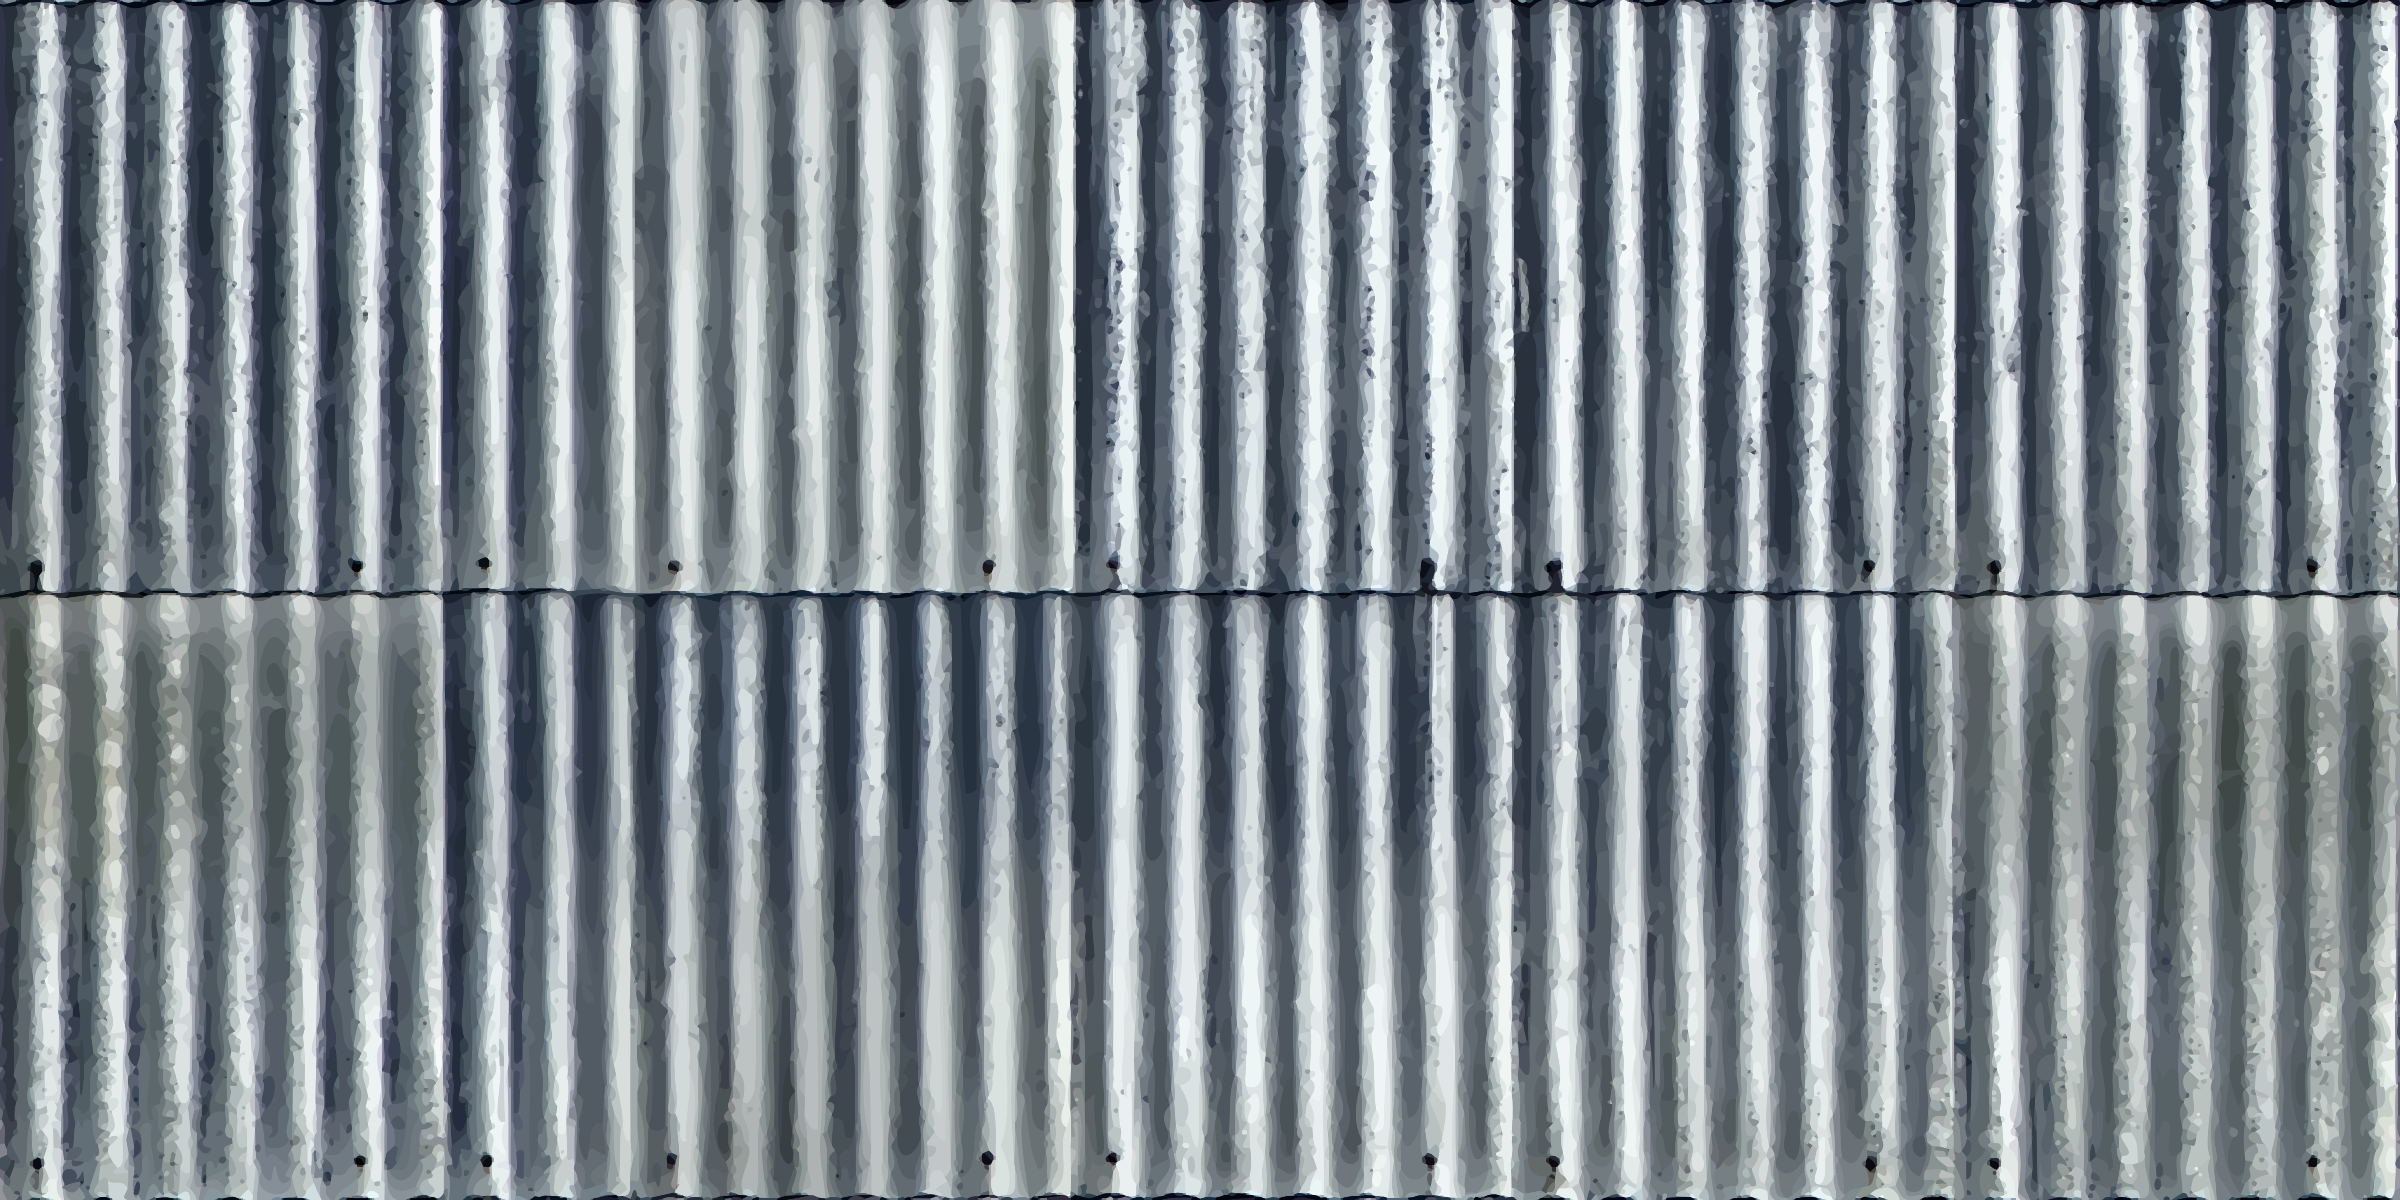 Corrugated metal 7 by Firkin